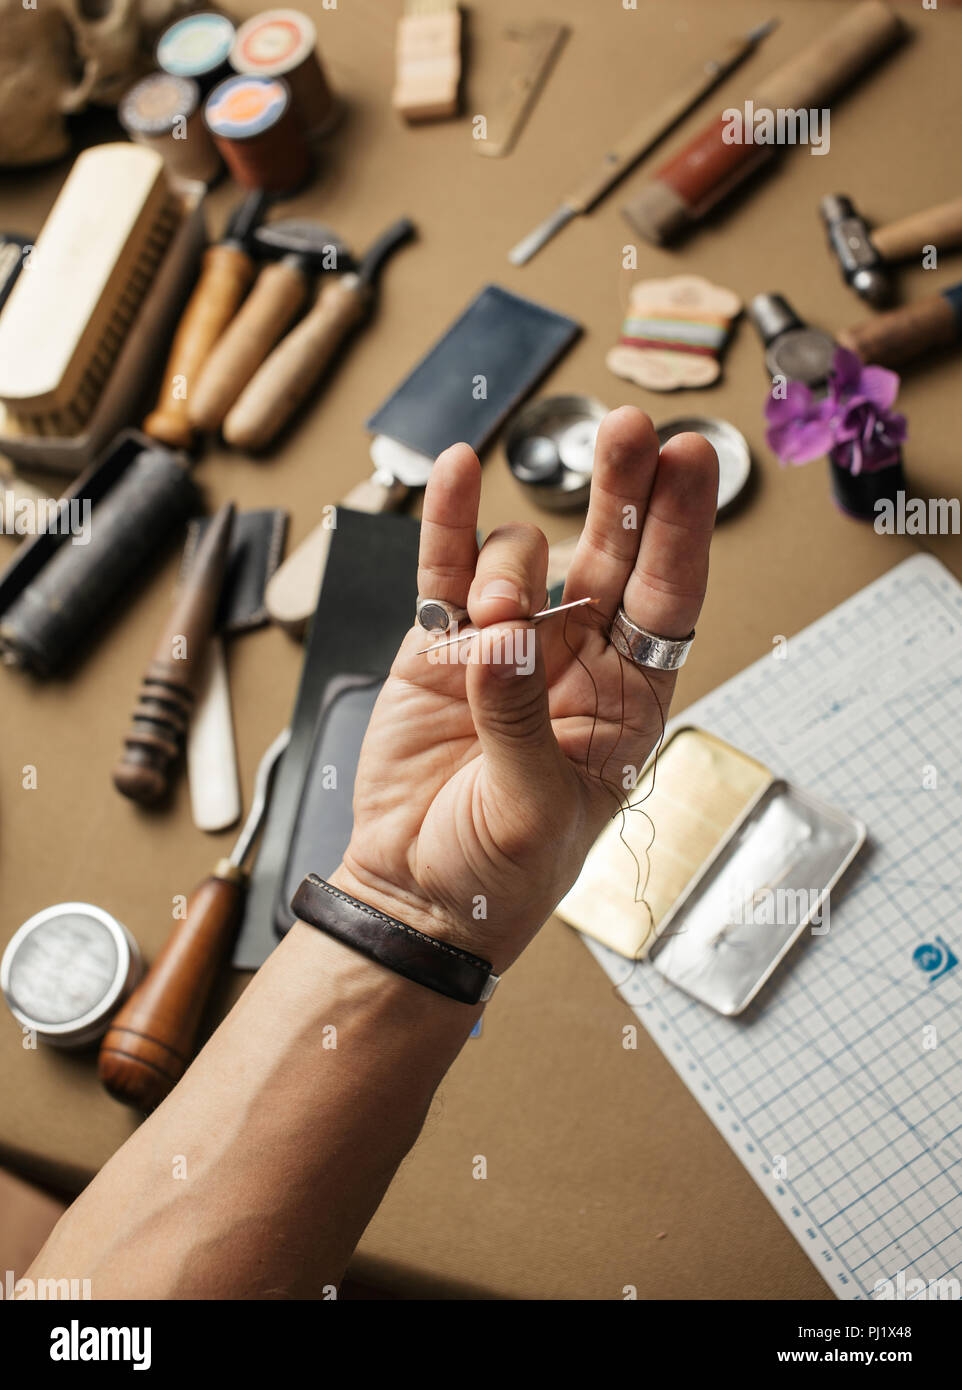 Working process of producing hand made leather wallet in the leather workshop. - Stock Image